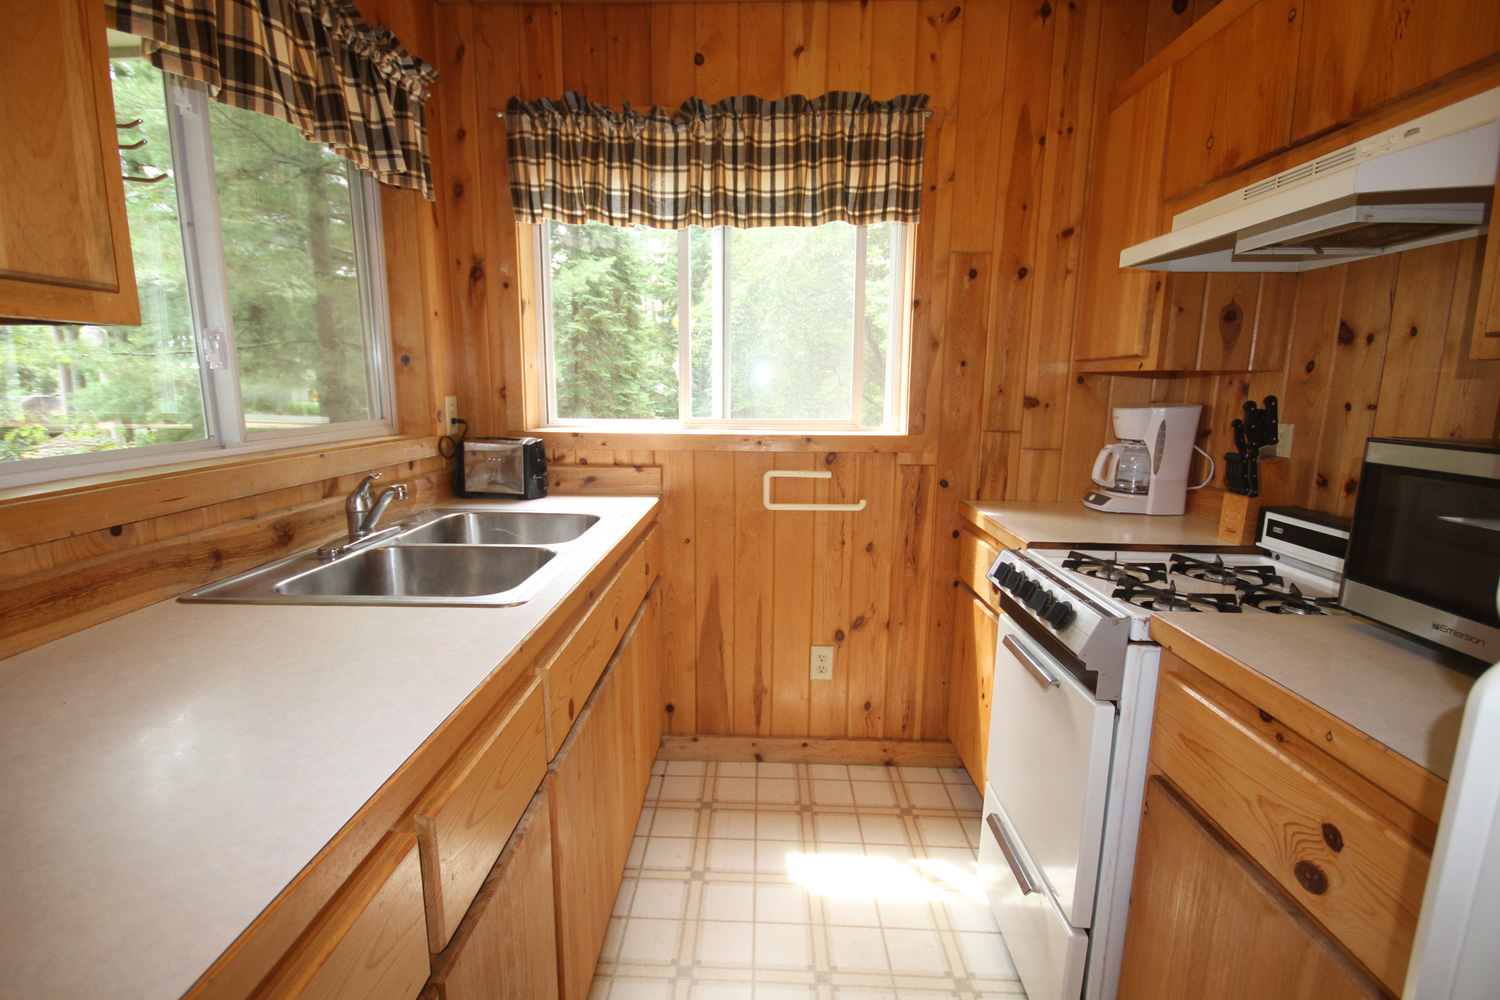 Kitchen with a great view of the lake